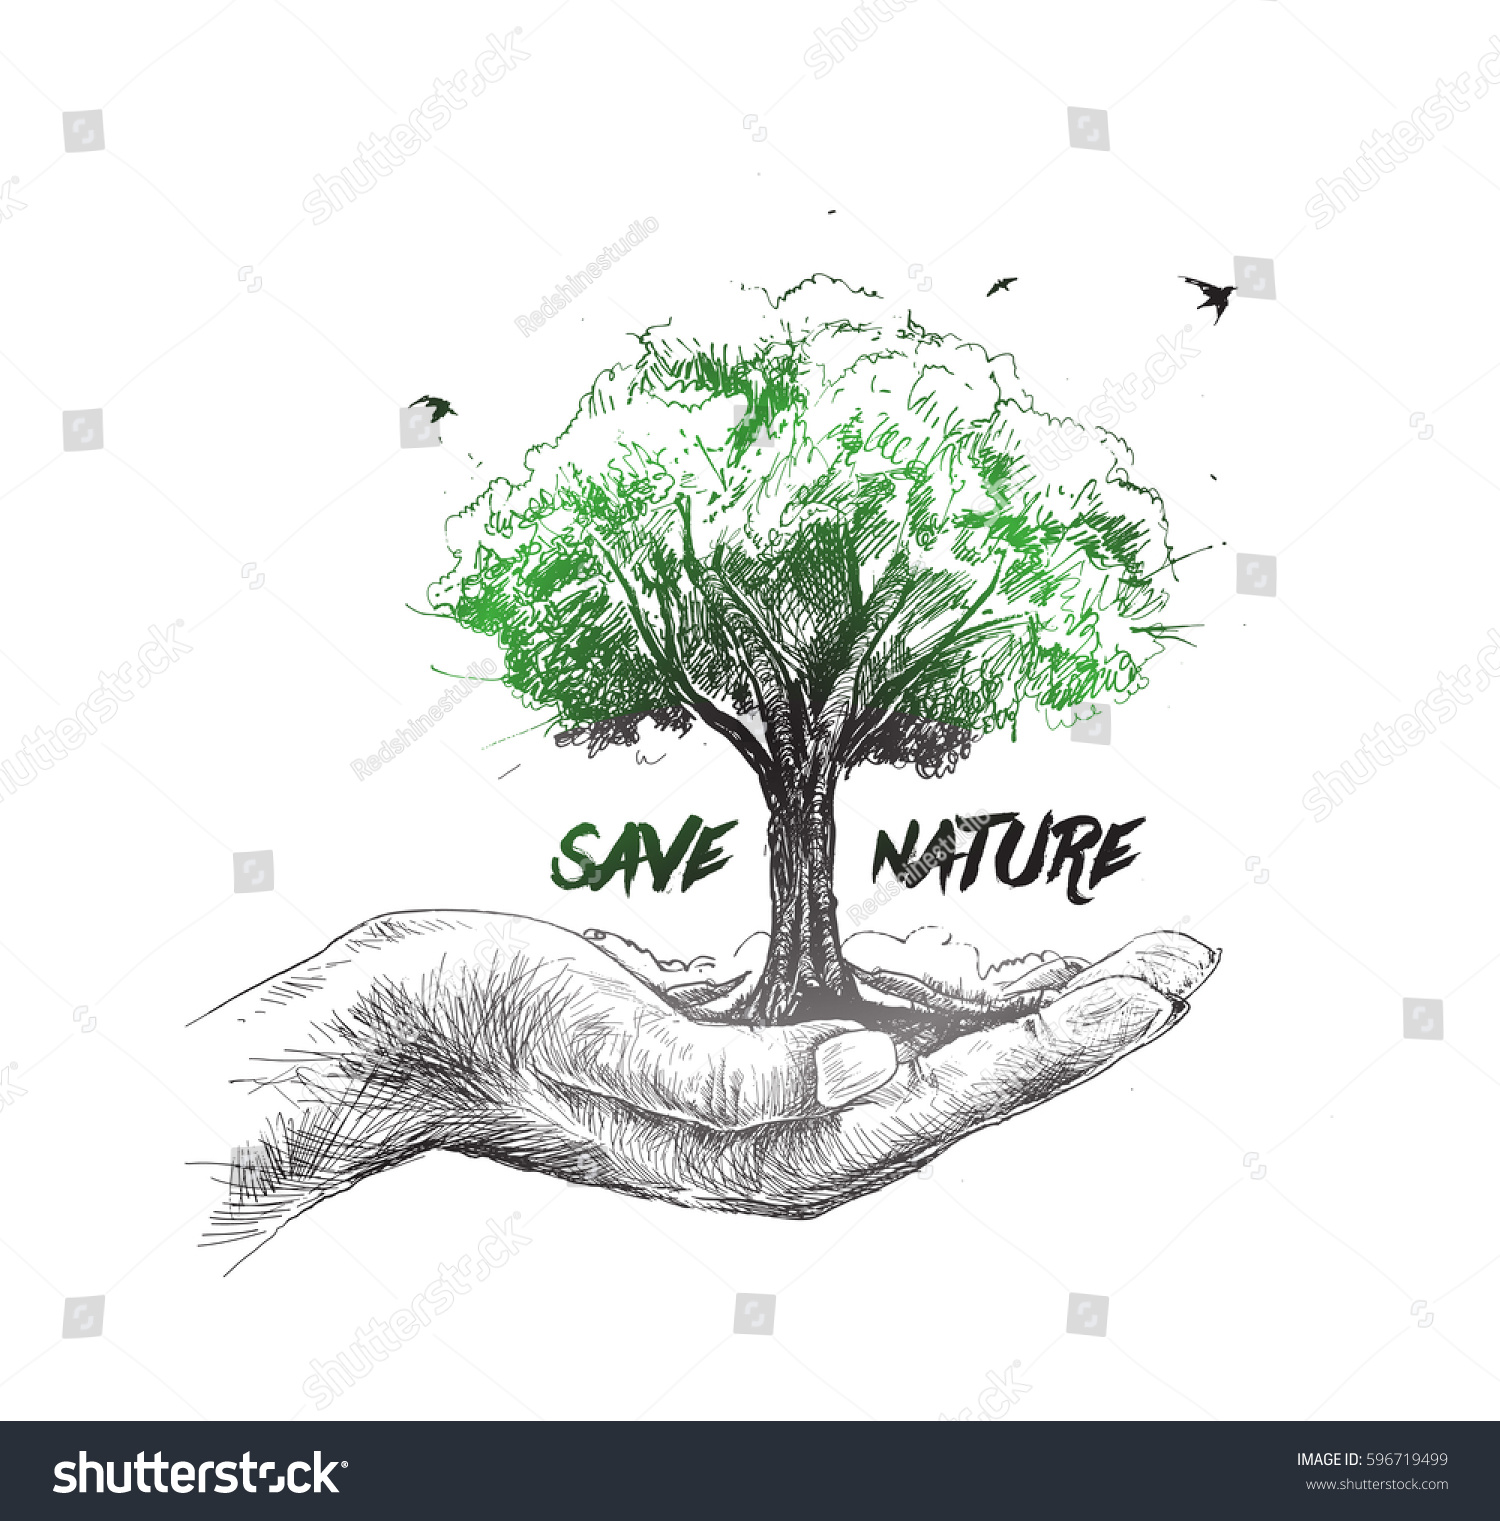 1500x1521 Save Nature Human Hand Holding Tree Against White Background